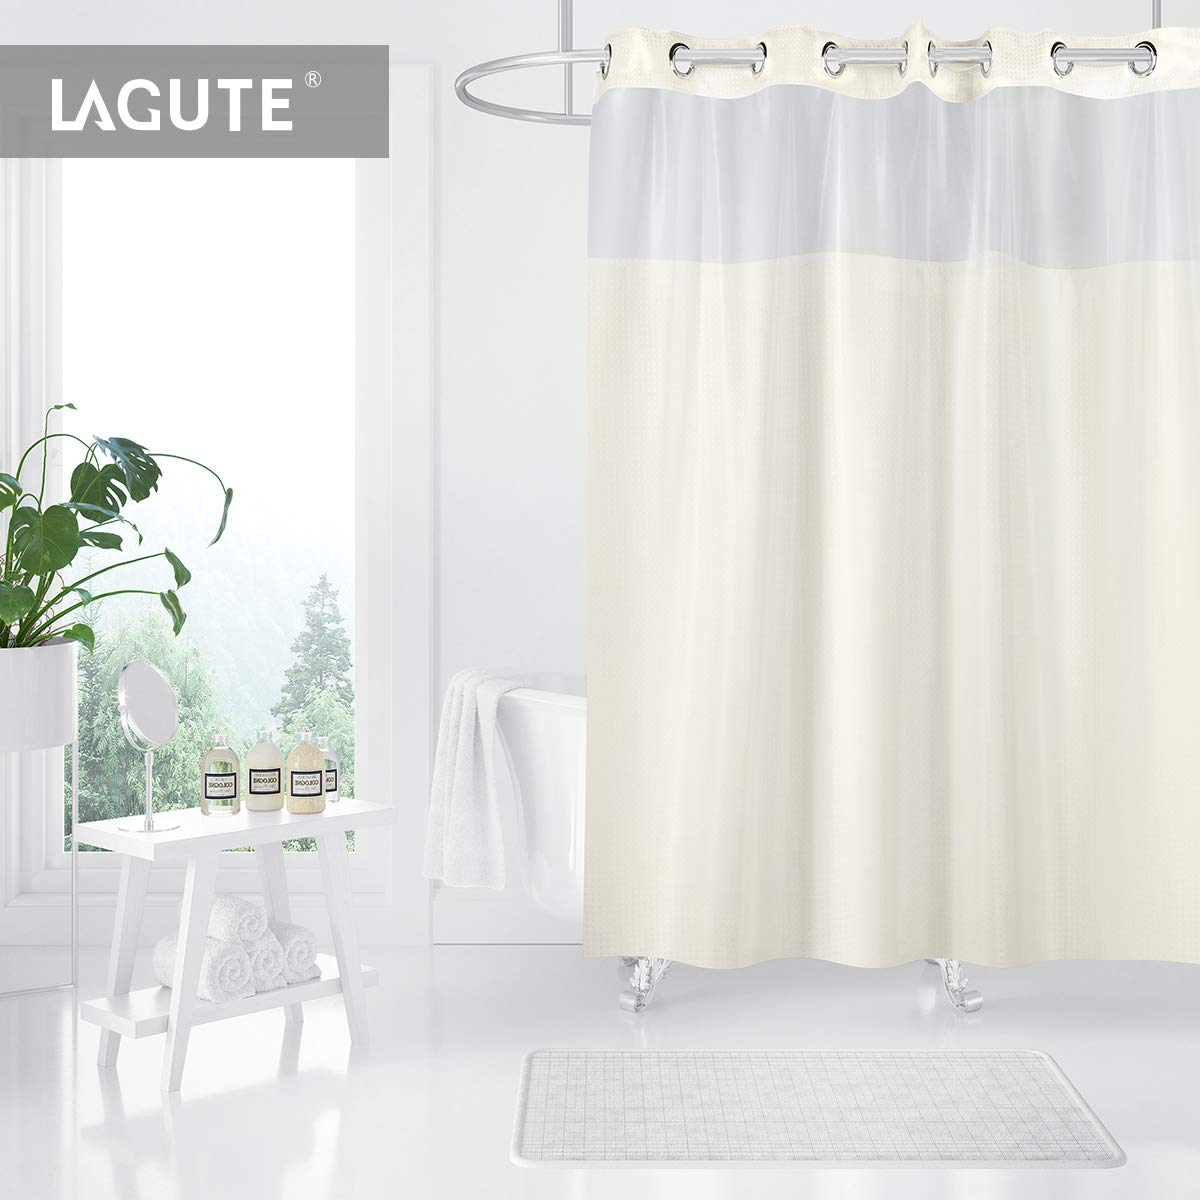 Lagute Hookless Shower Curtain with SnapHook Removable PEVA Insert, 180 x 188 cm Fabric Bath Curtain with Mildew Proof Snap In Insert for Bathroom, Hotel, Spa Zartes Gelb HS-301